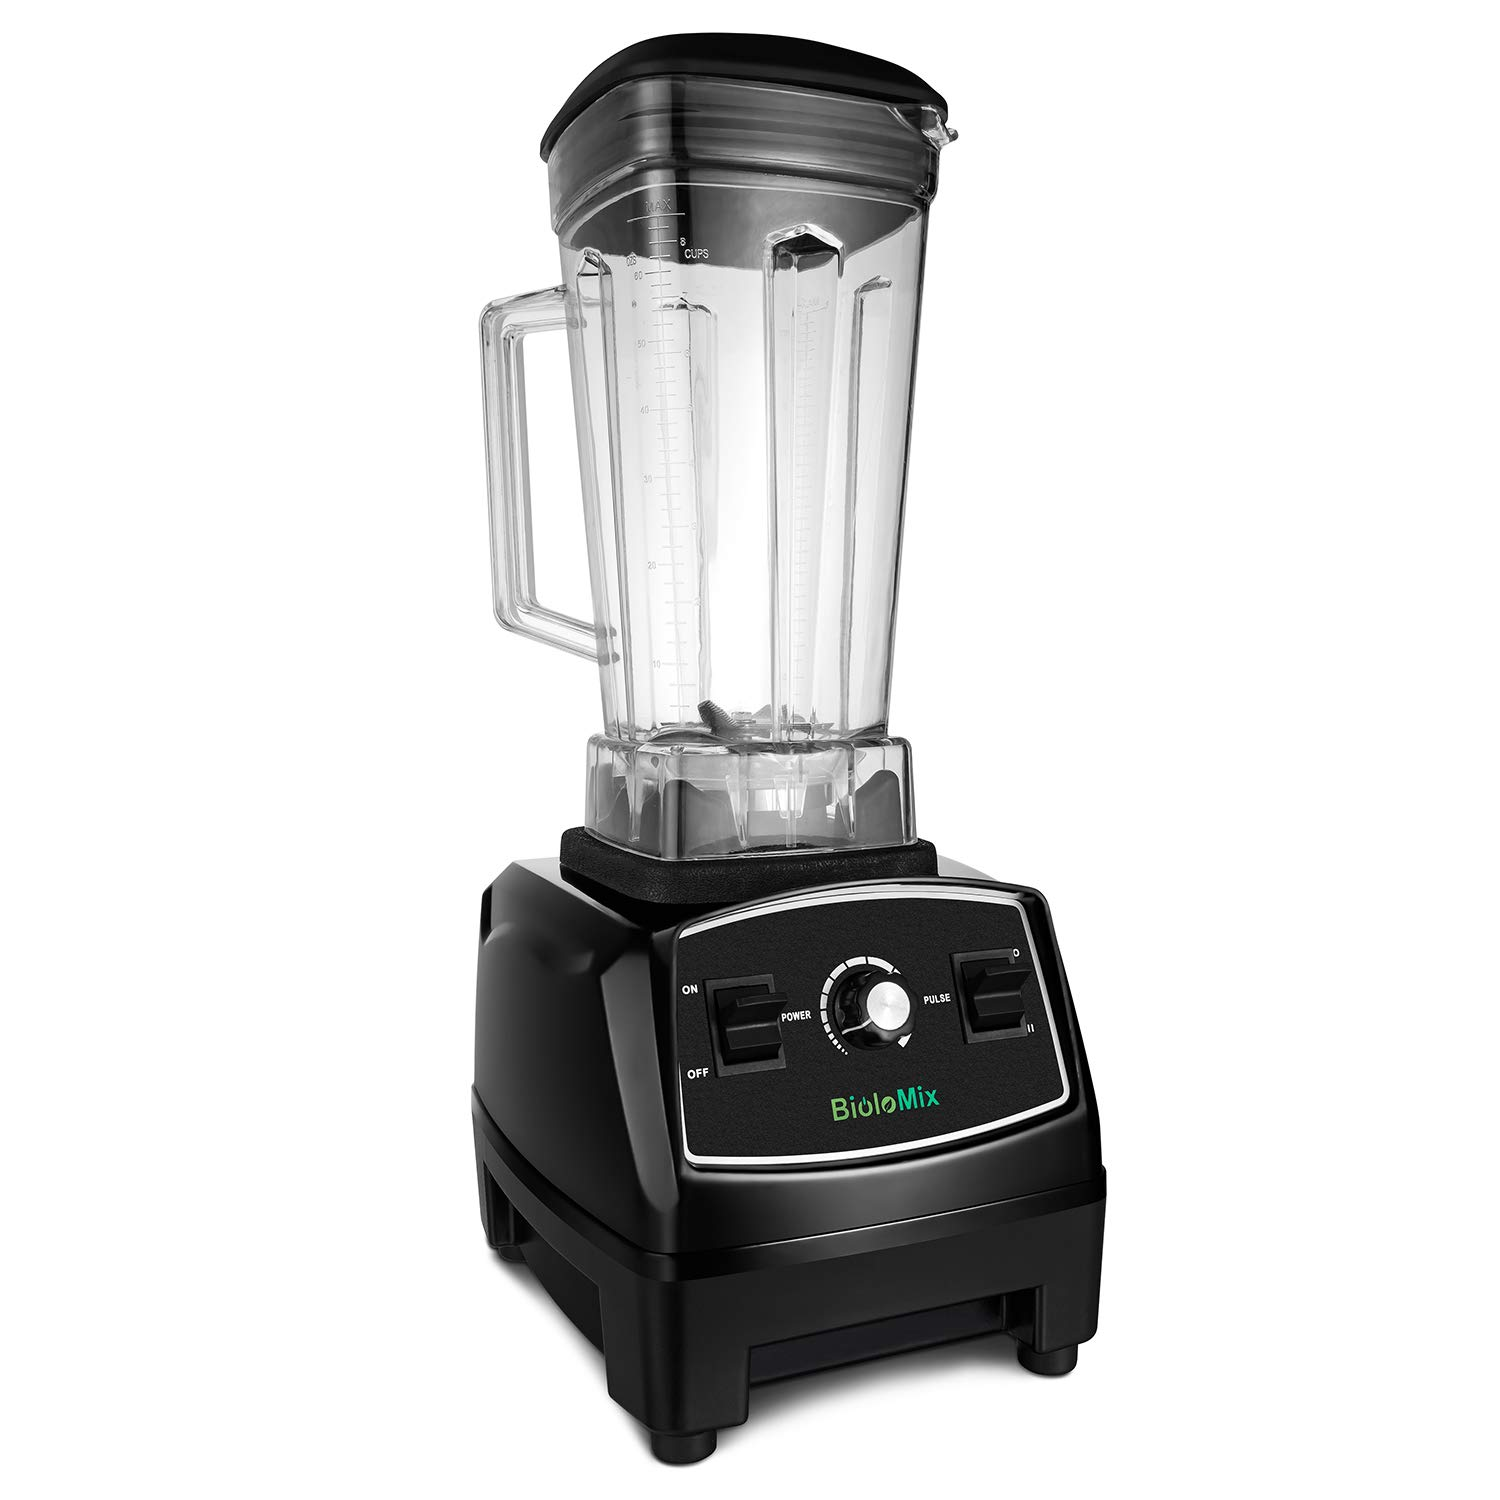 Countertop Blender Professional Commercial Mixer Blender 70oz with 2200 Watt Base,Total Crushing Technology for Smoothies, Ice and Frozen Fruit (Black)